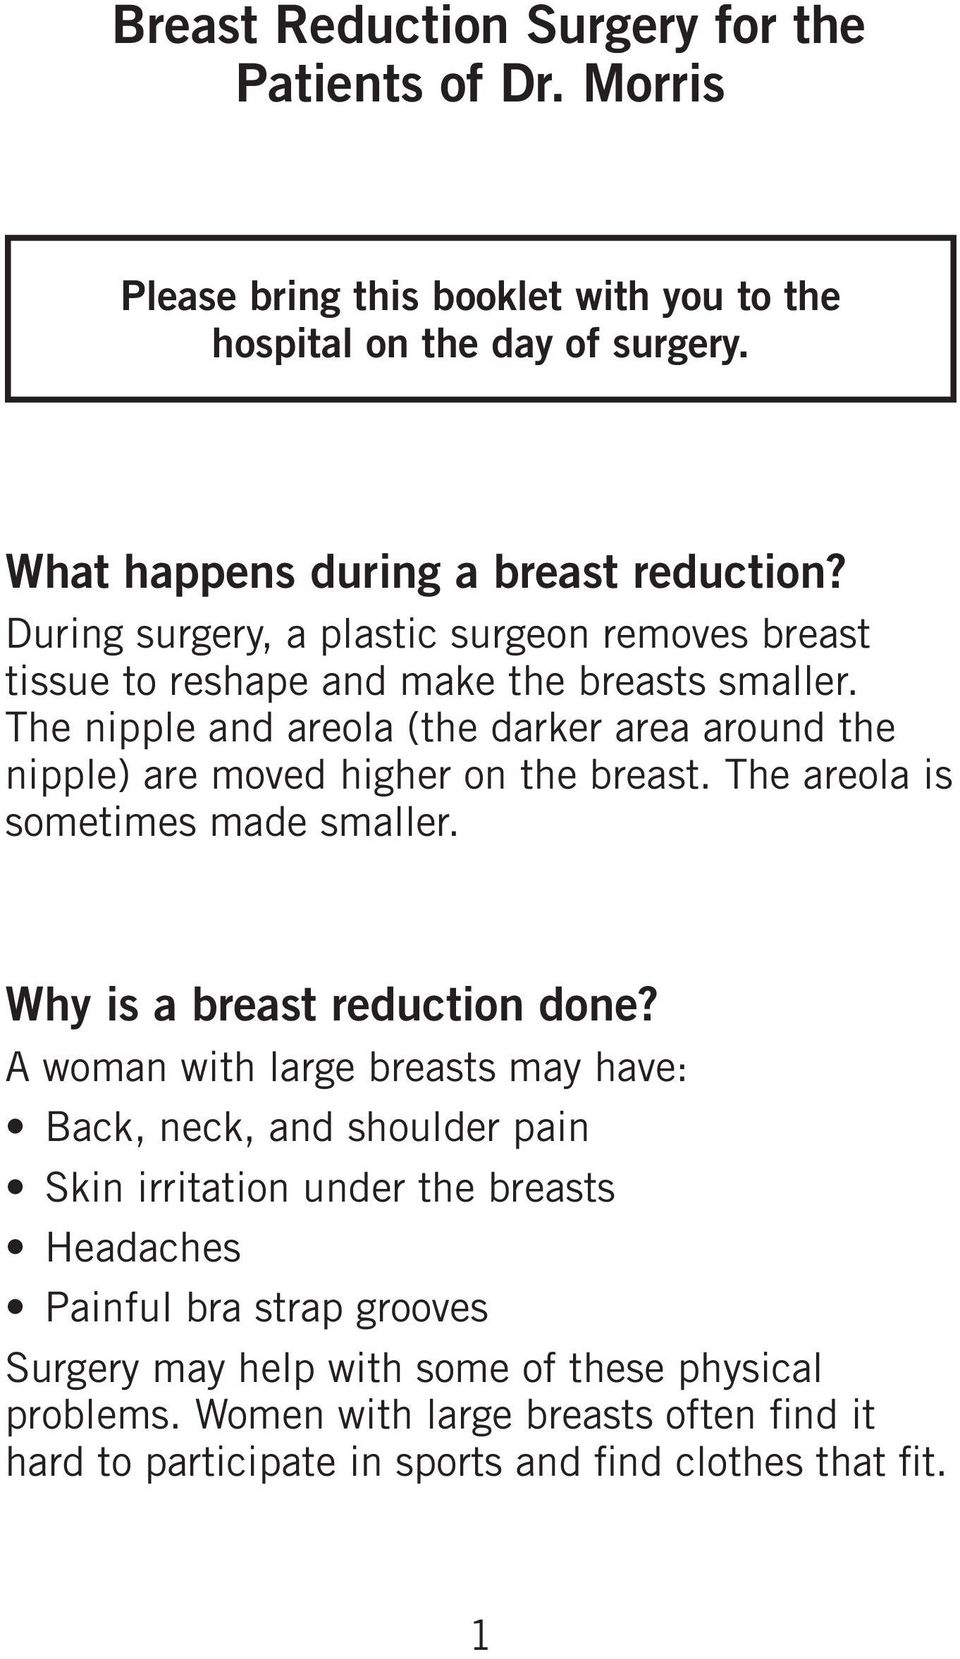 The nipple and areola (the darker area around the nipple) are moved higher on the breast. The areola is sometimes made smaller. Why is a breast reduction done?